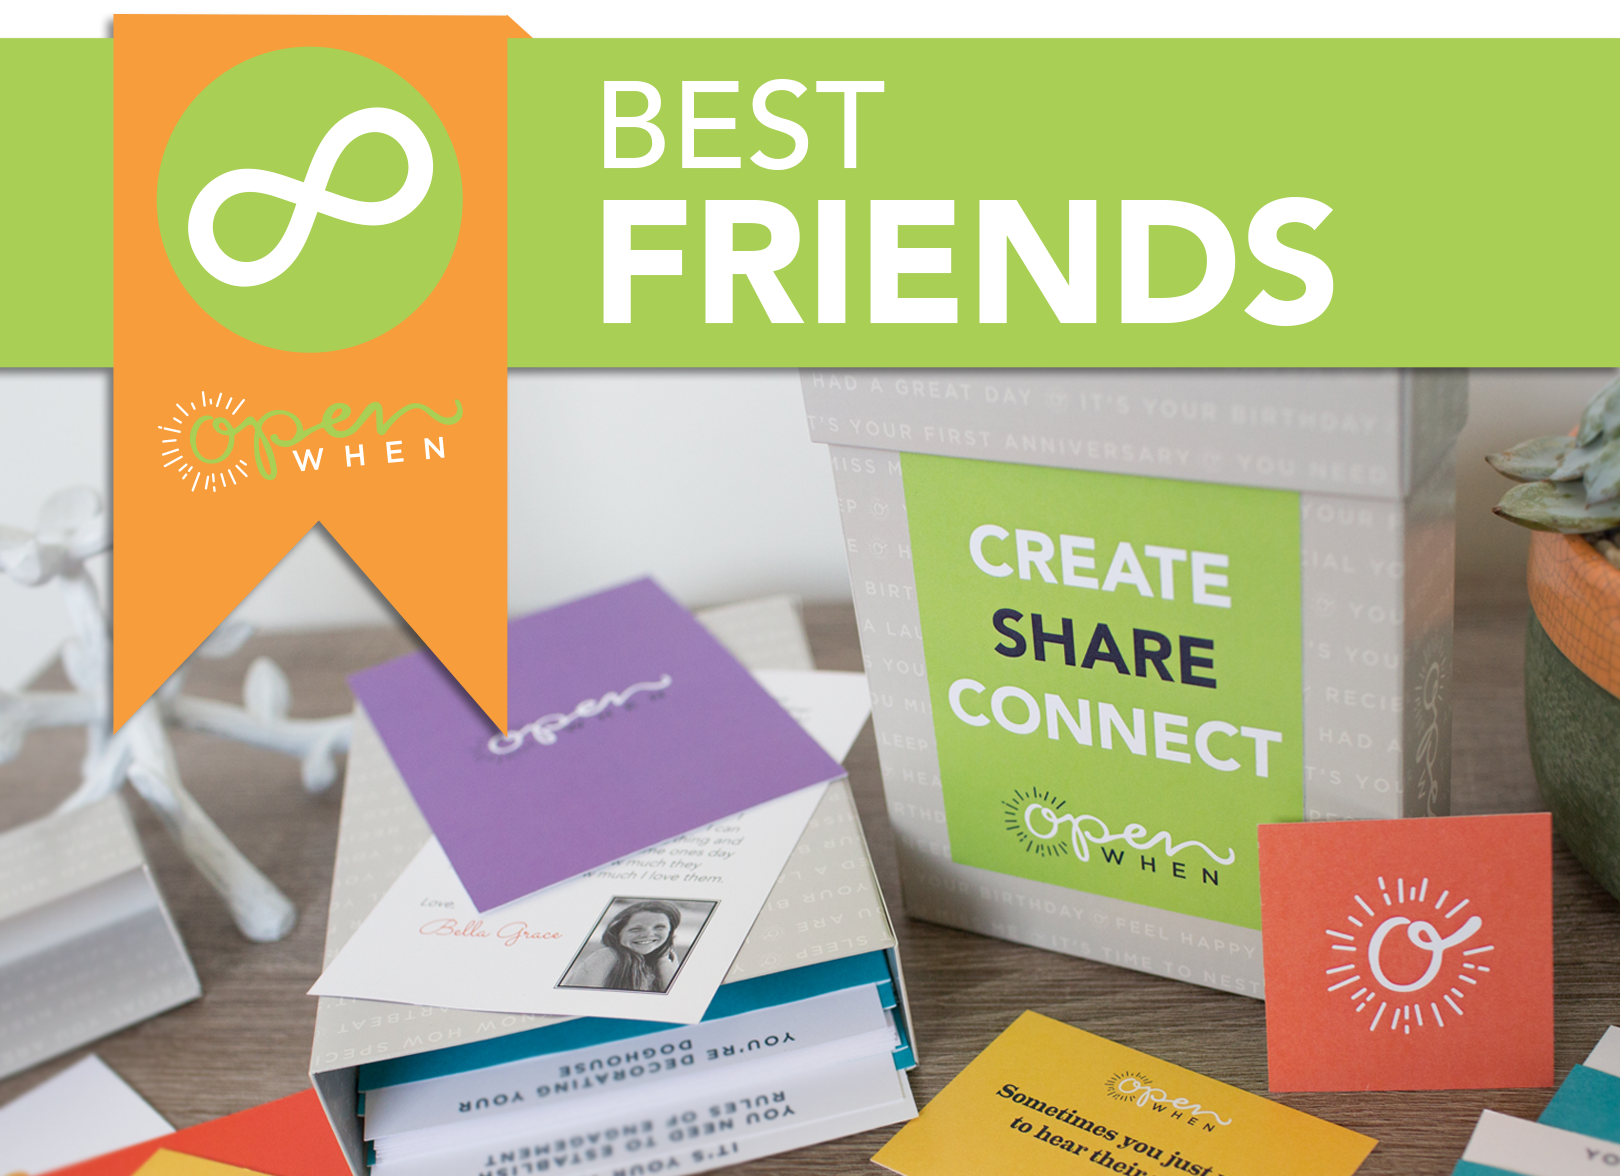 Best Friends  Open When  Customizable Letters Cards And Gift Packs